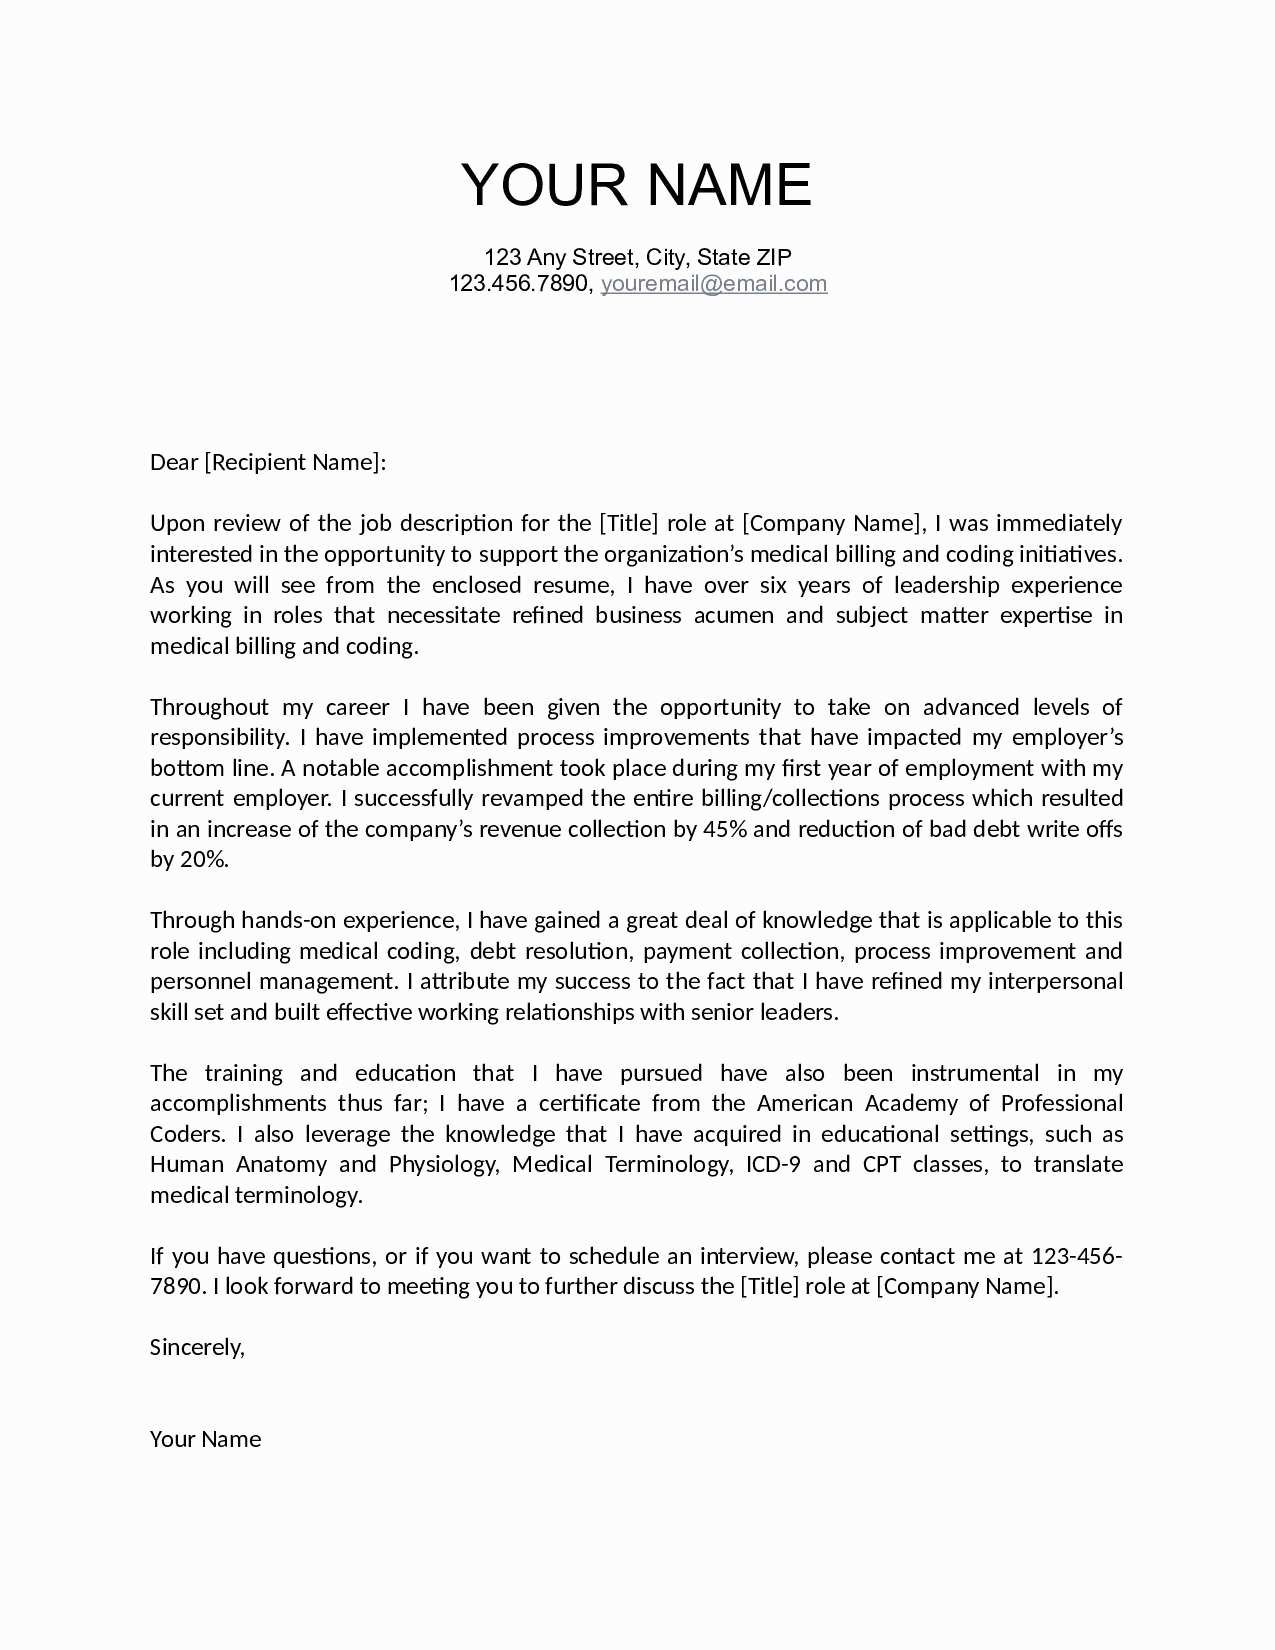 Media Cover Letter Template - Covering Letter for Work Experience Best Job Fer Letter Template